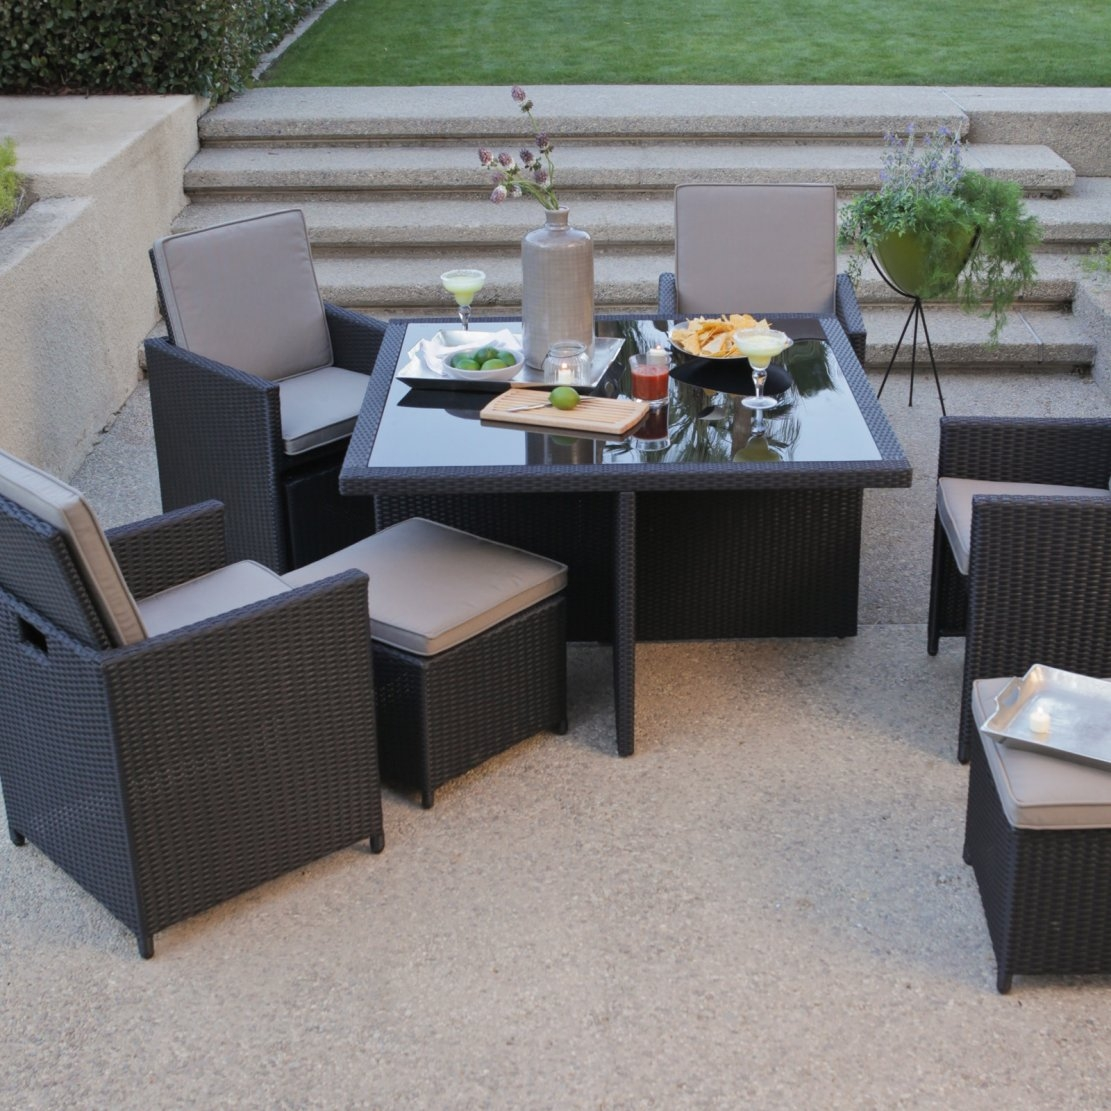 All-Weather Wicker Nesting Patio Furniture Dining Set - Seats 4, KAWD1399 :  This All-Weather Wicker Nesting Patio Furniture Dining Set - Seats 4 is a must-have for those who want style and functionality; its all-weather design has a nesting feature that's a real space saver. This unique dining set includes a glass-topped table with four chairs and accompanying ottomans. The nesting option allows the ottomans to be stored neatly under their chairs, and the chairs can nest under the table to form a cube. Its all-weather resin wicker construction comes in dark espresso and is complemented with weather-treated beige cushions. Hose off to clean; Spot clean cushions; Rich, dark espresso all-weather resin wicker construction; Sturdy, rust-resistant aluminum frame; Cushions made of weather treated polyester; Includes dining table, 4 chairs, and 4 ottomans.